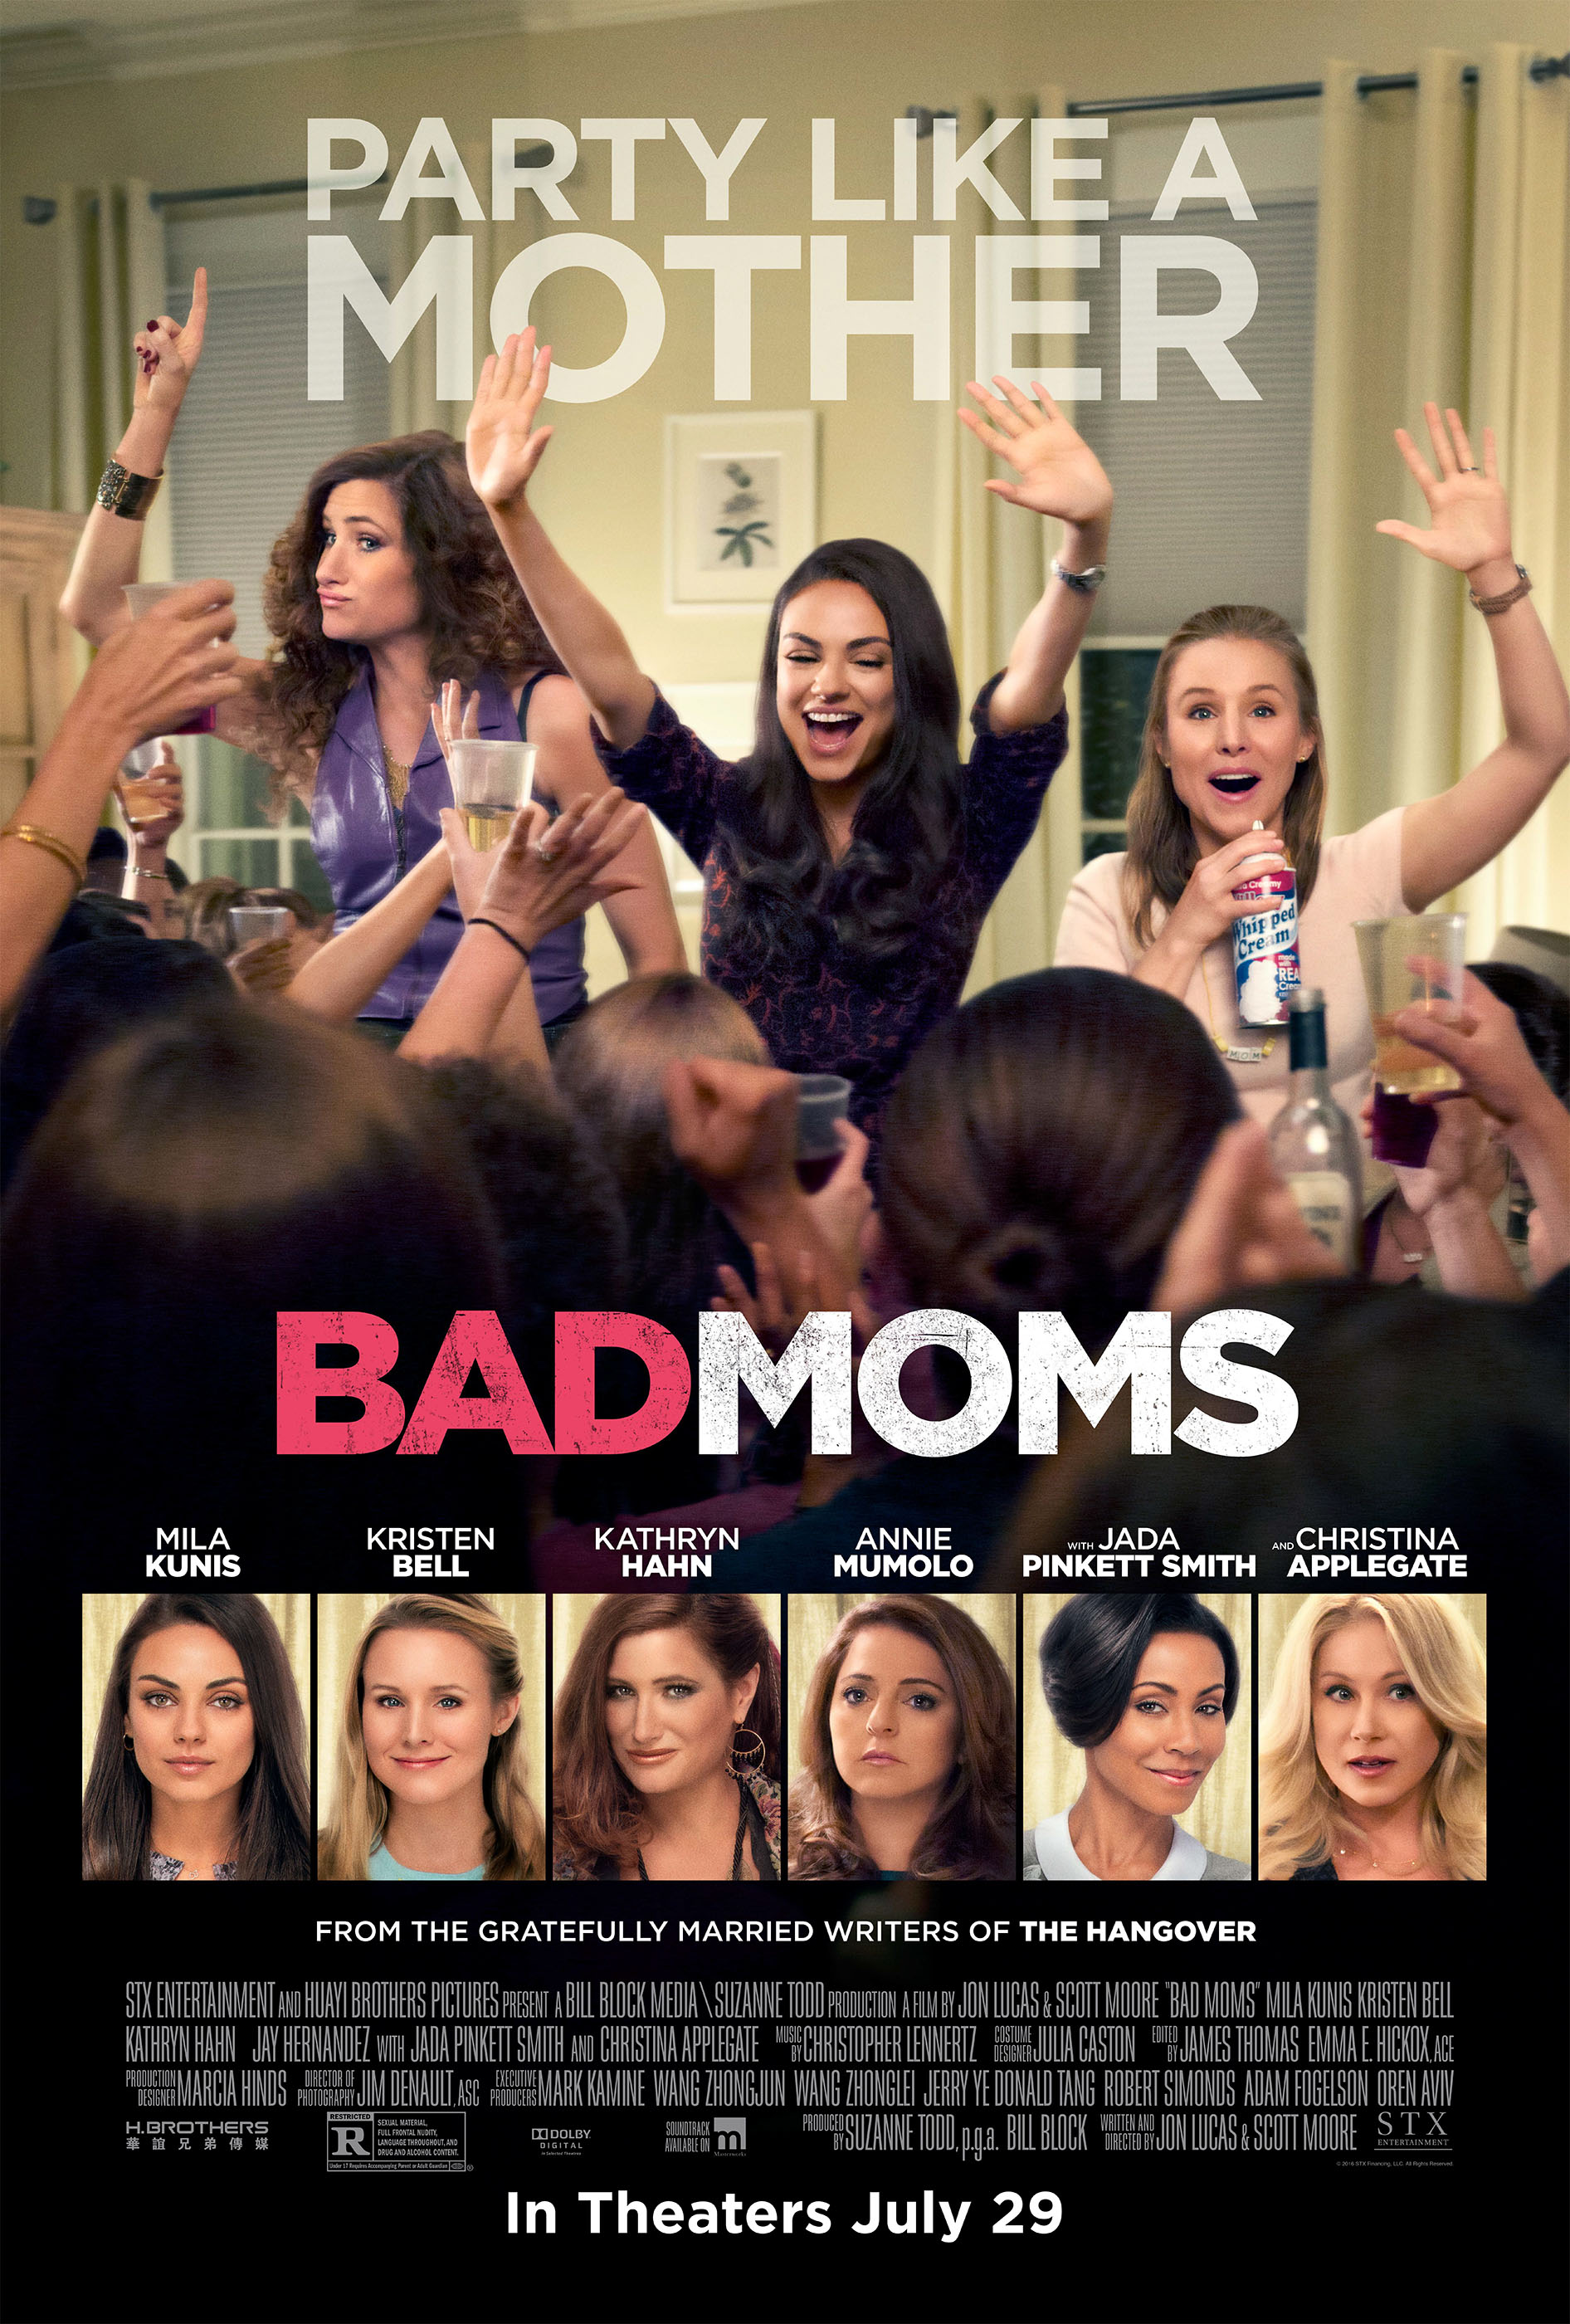 Bad Moms Christmas Dvd Release Date.Bad Moms 2016 Imdb